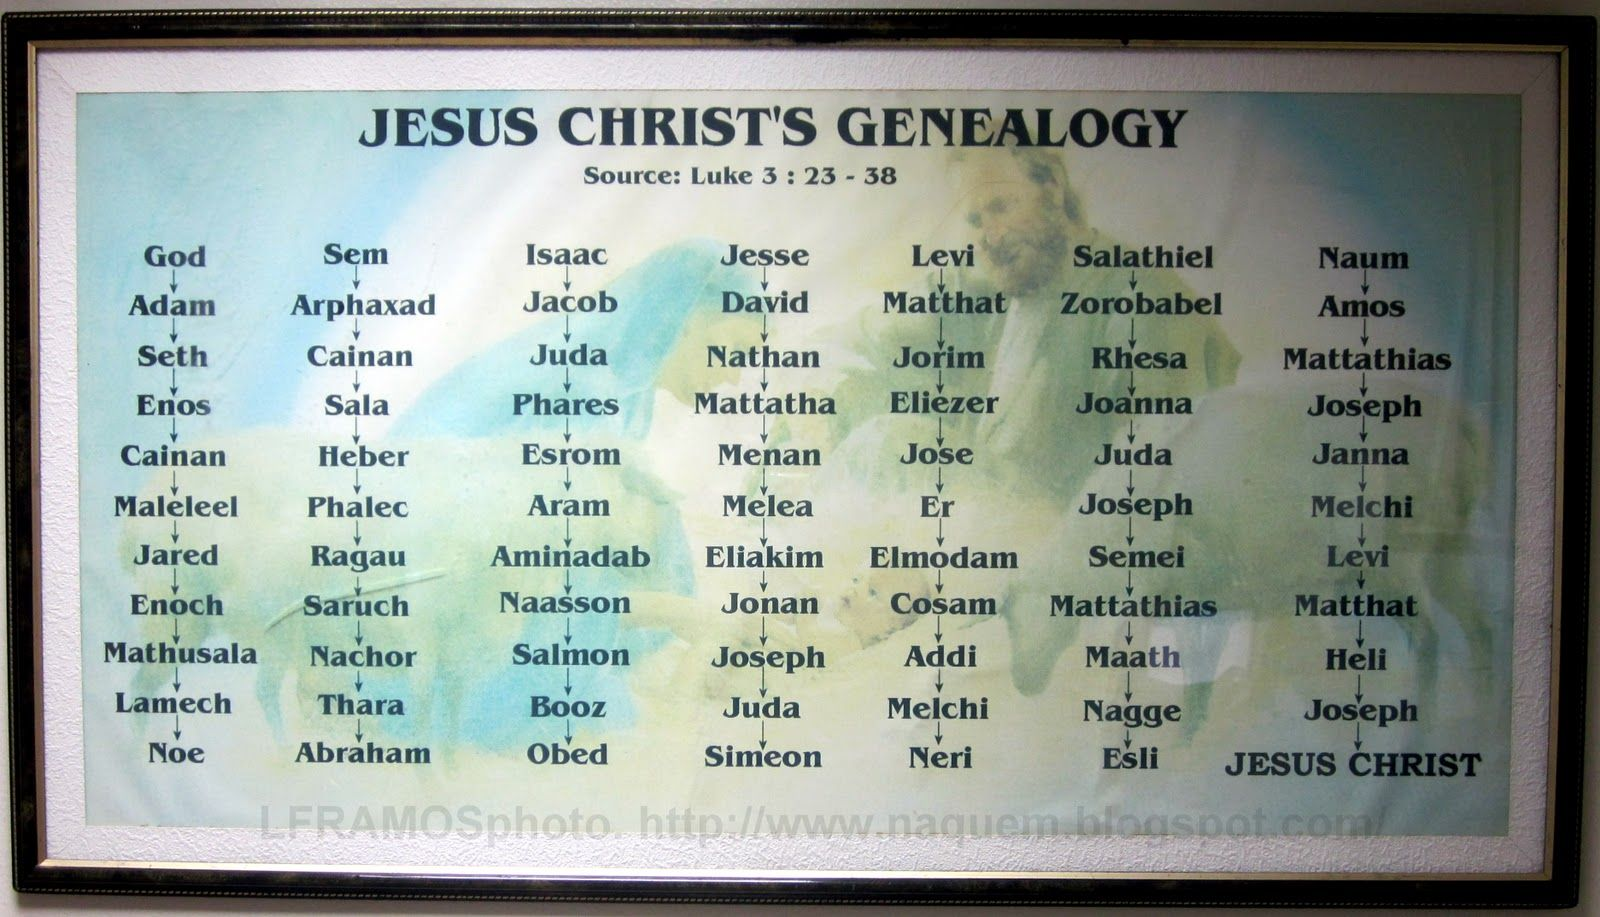 77 Fathers Amp Sons In Jesus Christ S Genealogy According To